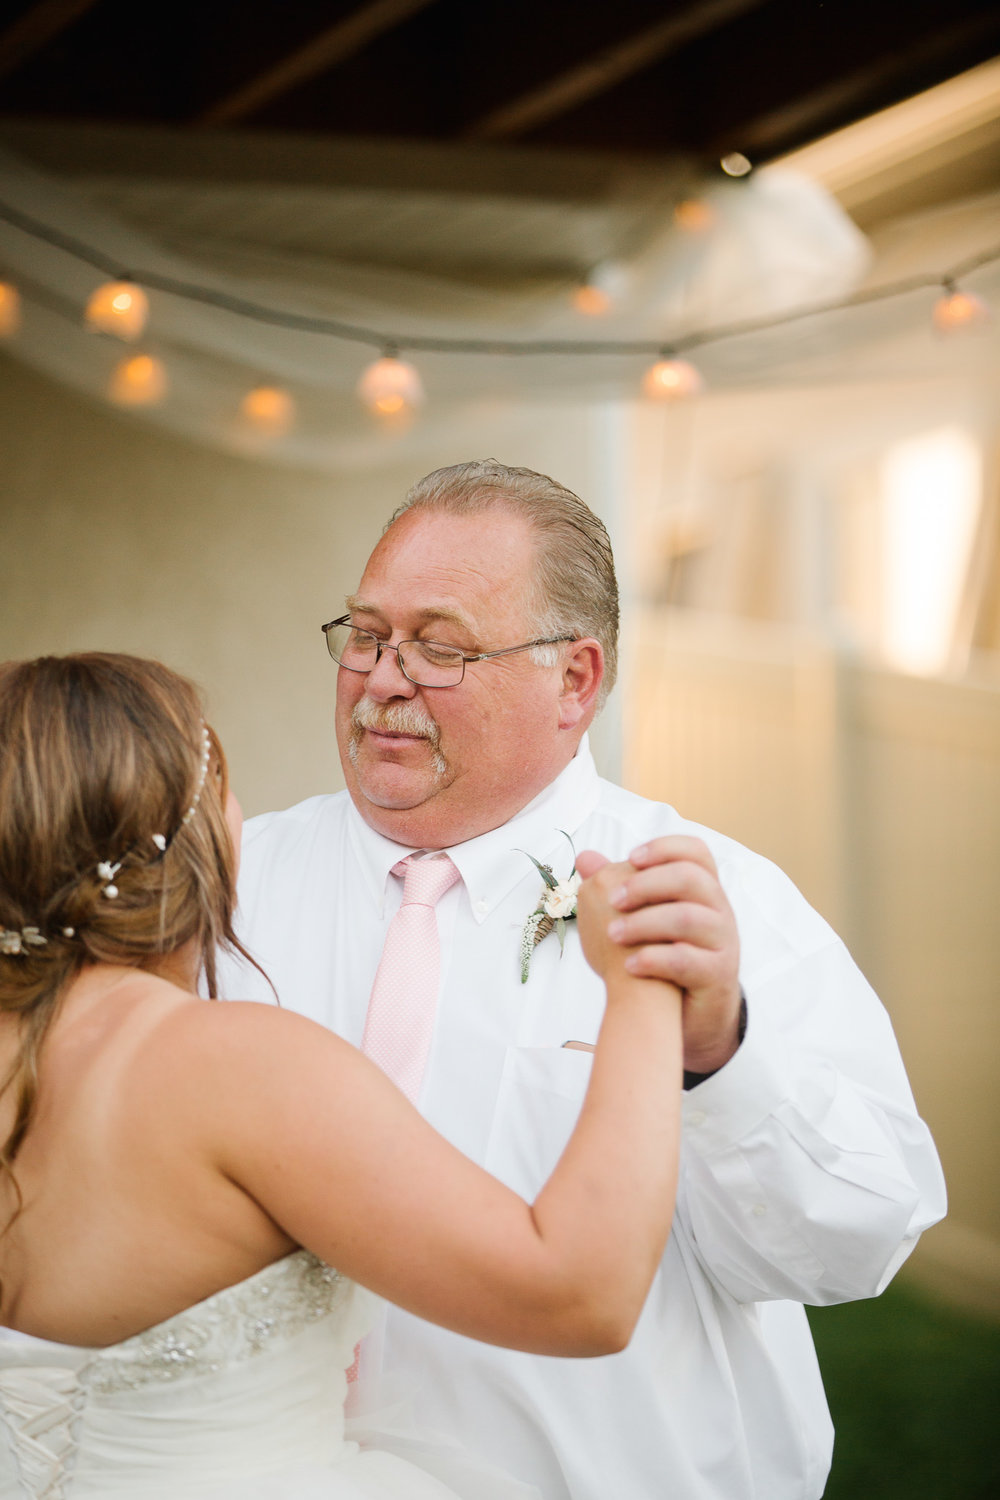 LaurenJerameWedding_JTP2018_052.jpg